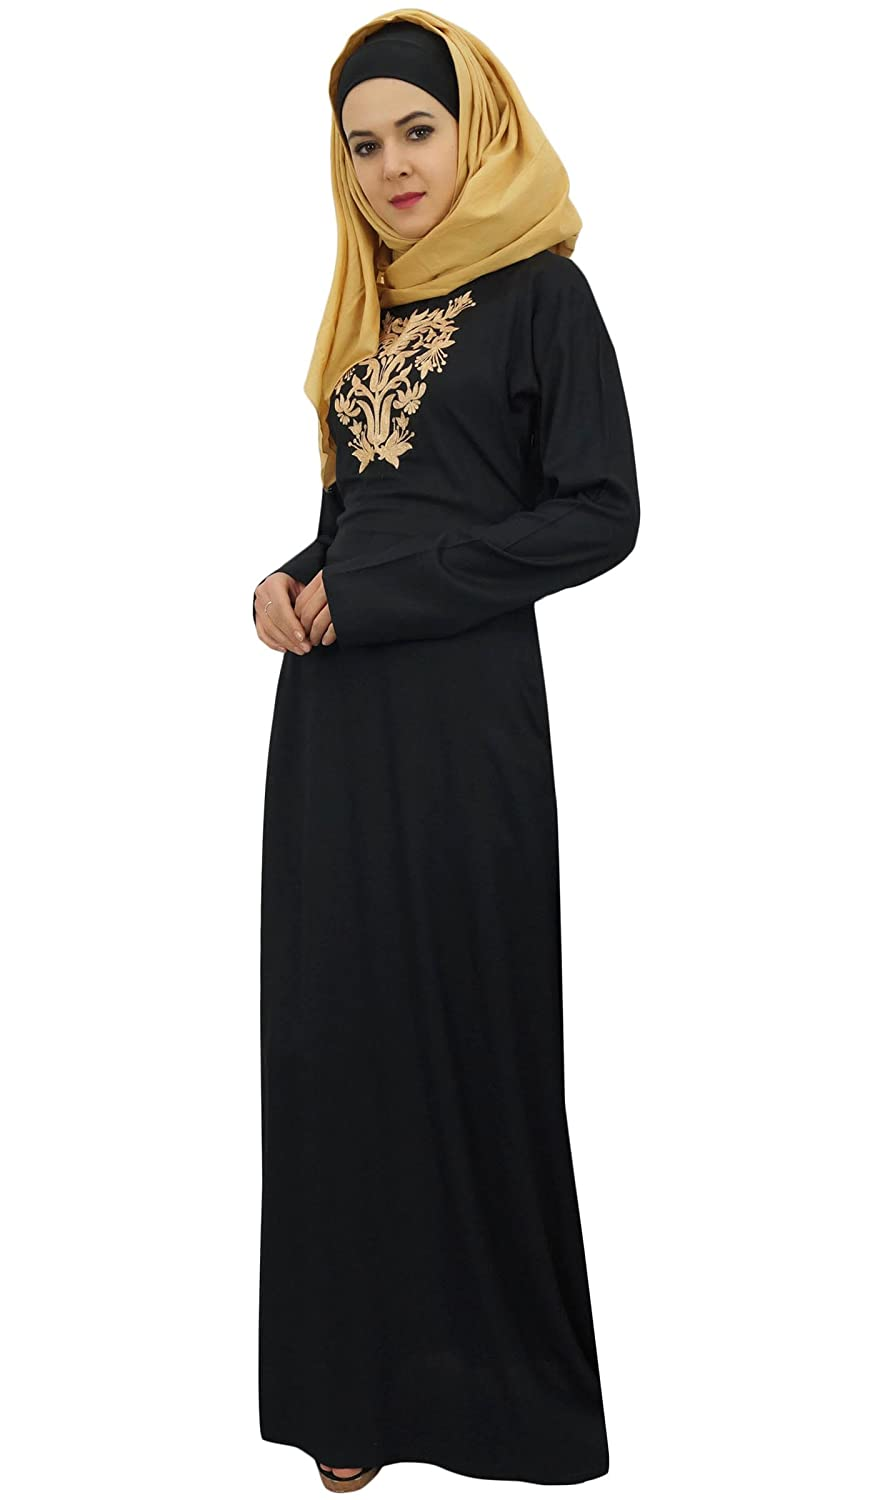 e6b87feaca4 Bimba Women s Long Rayon Maxi Abaya Jilbab Islamic Dress with Hijab   Amazon.co.uk  Clothing